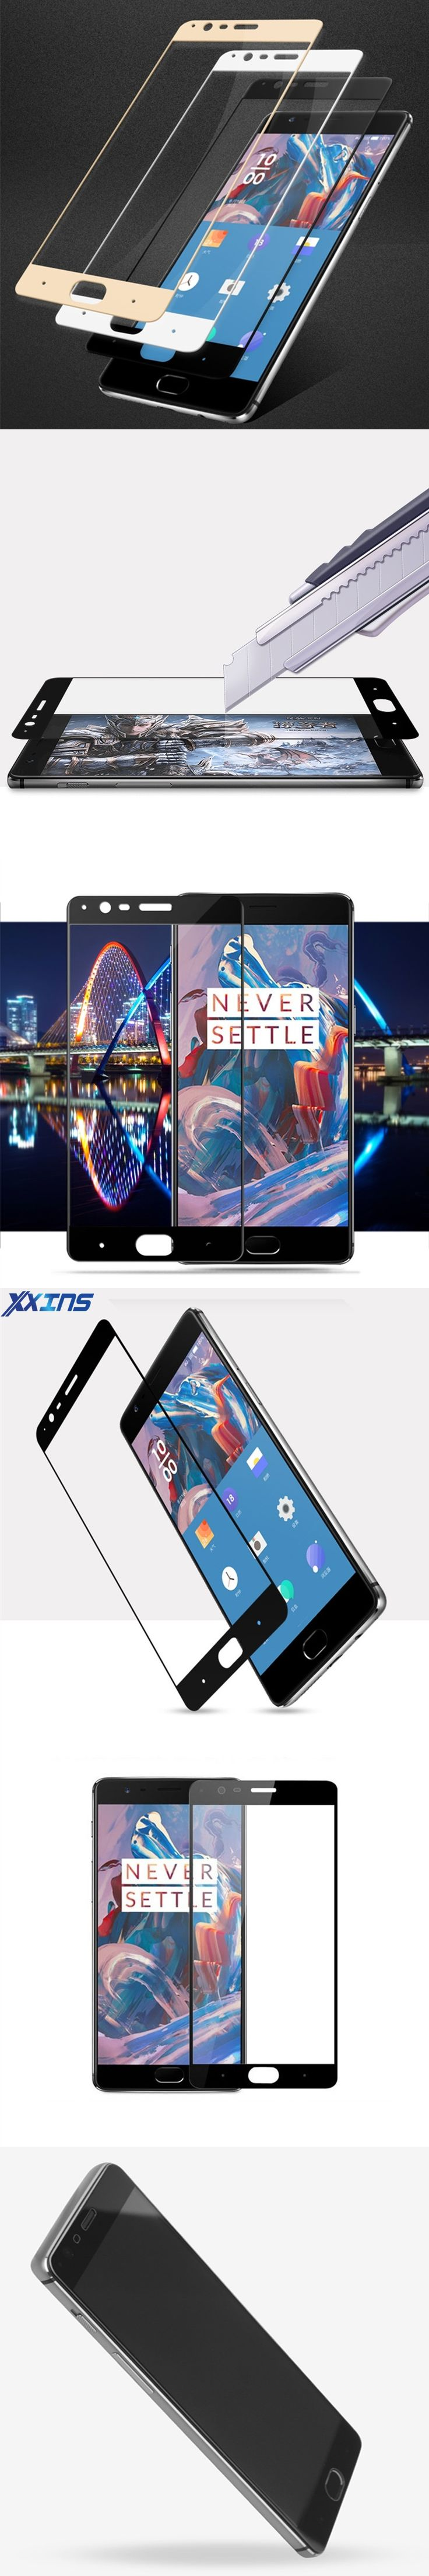 2017 Full coverage Tempered GLASS For One Plus 3T coloful mobile phone Screen Protector high quality anti scratch film case